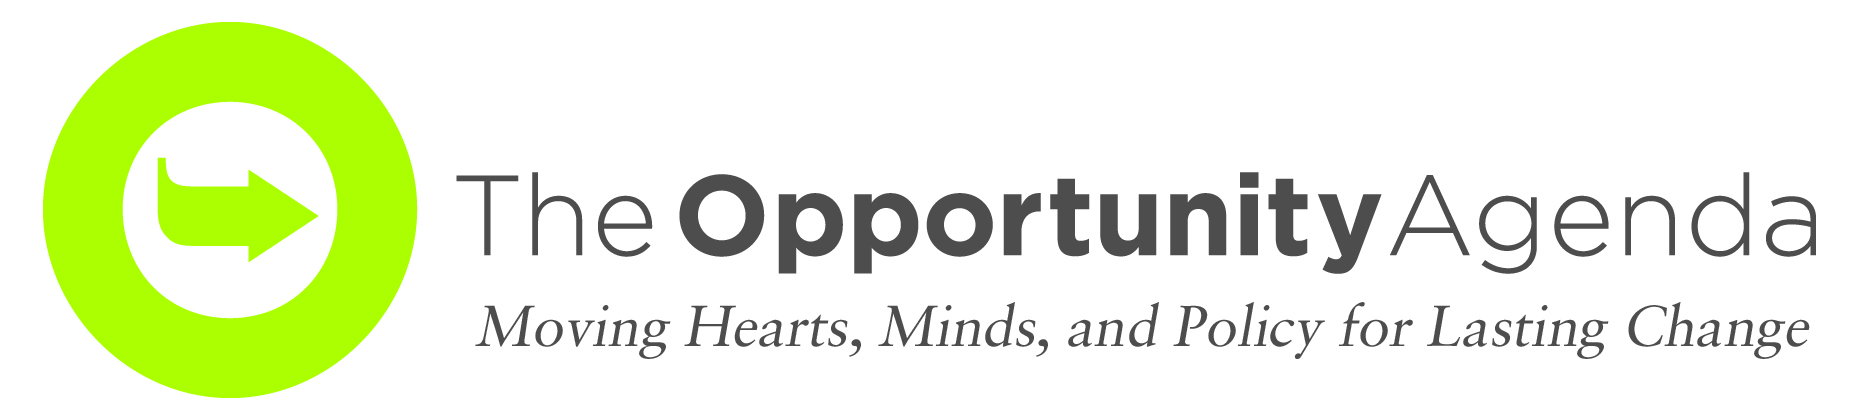 The opportunity agenda